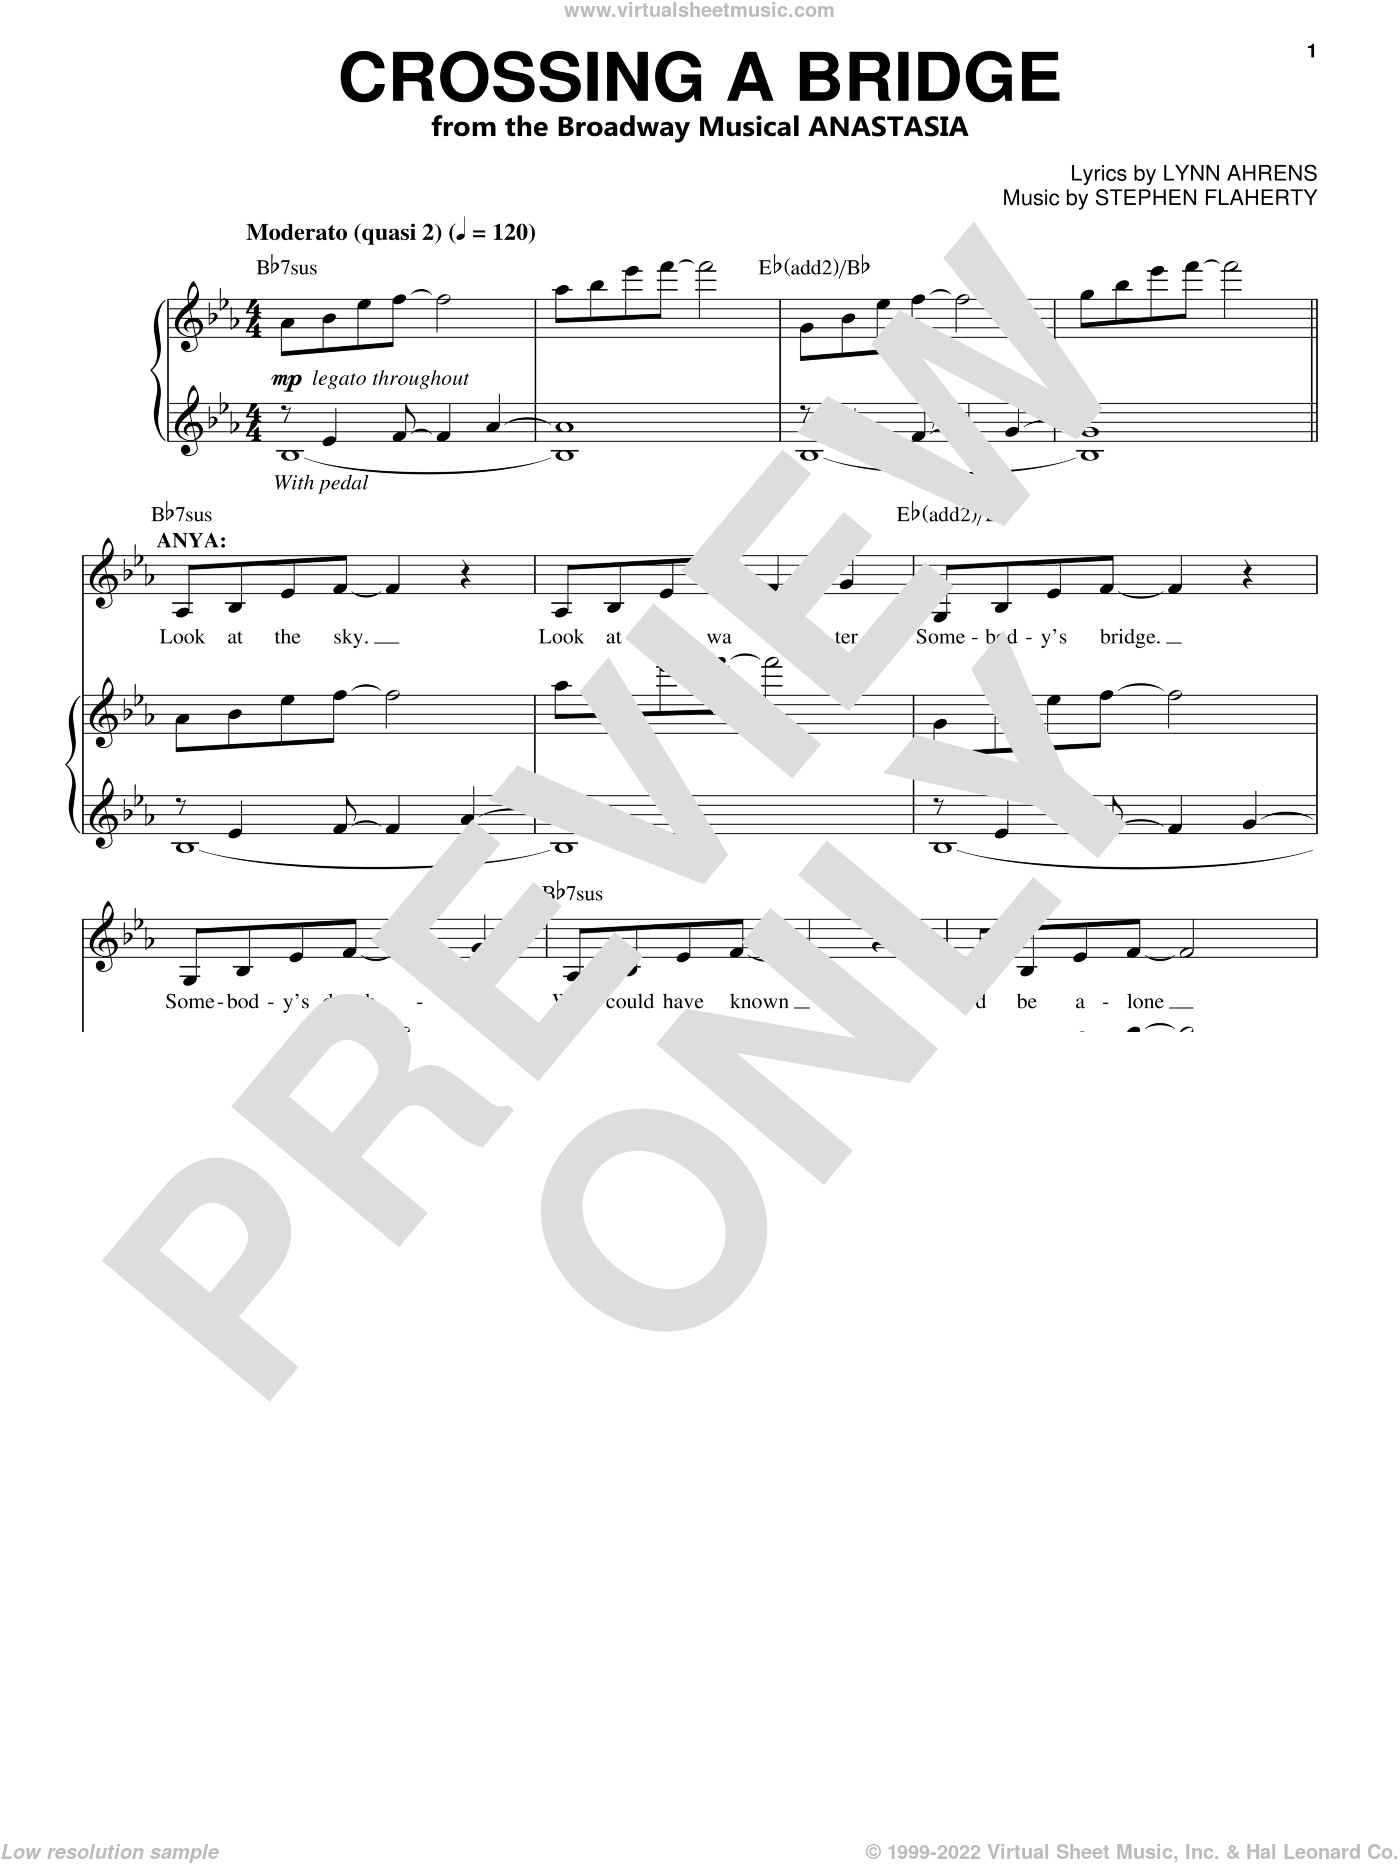 Crossing A Bridge sheet music for voice and piano by Stephen Flaherty and Lynn Ahrens, intermediate skill level